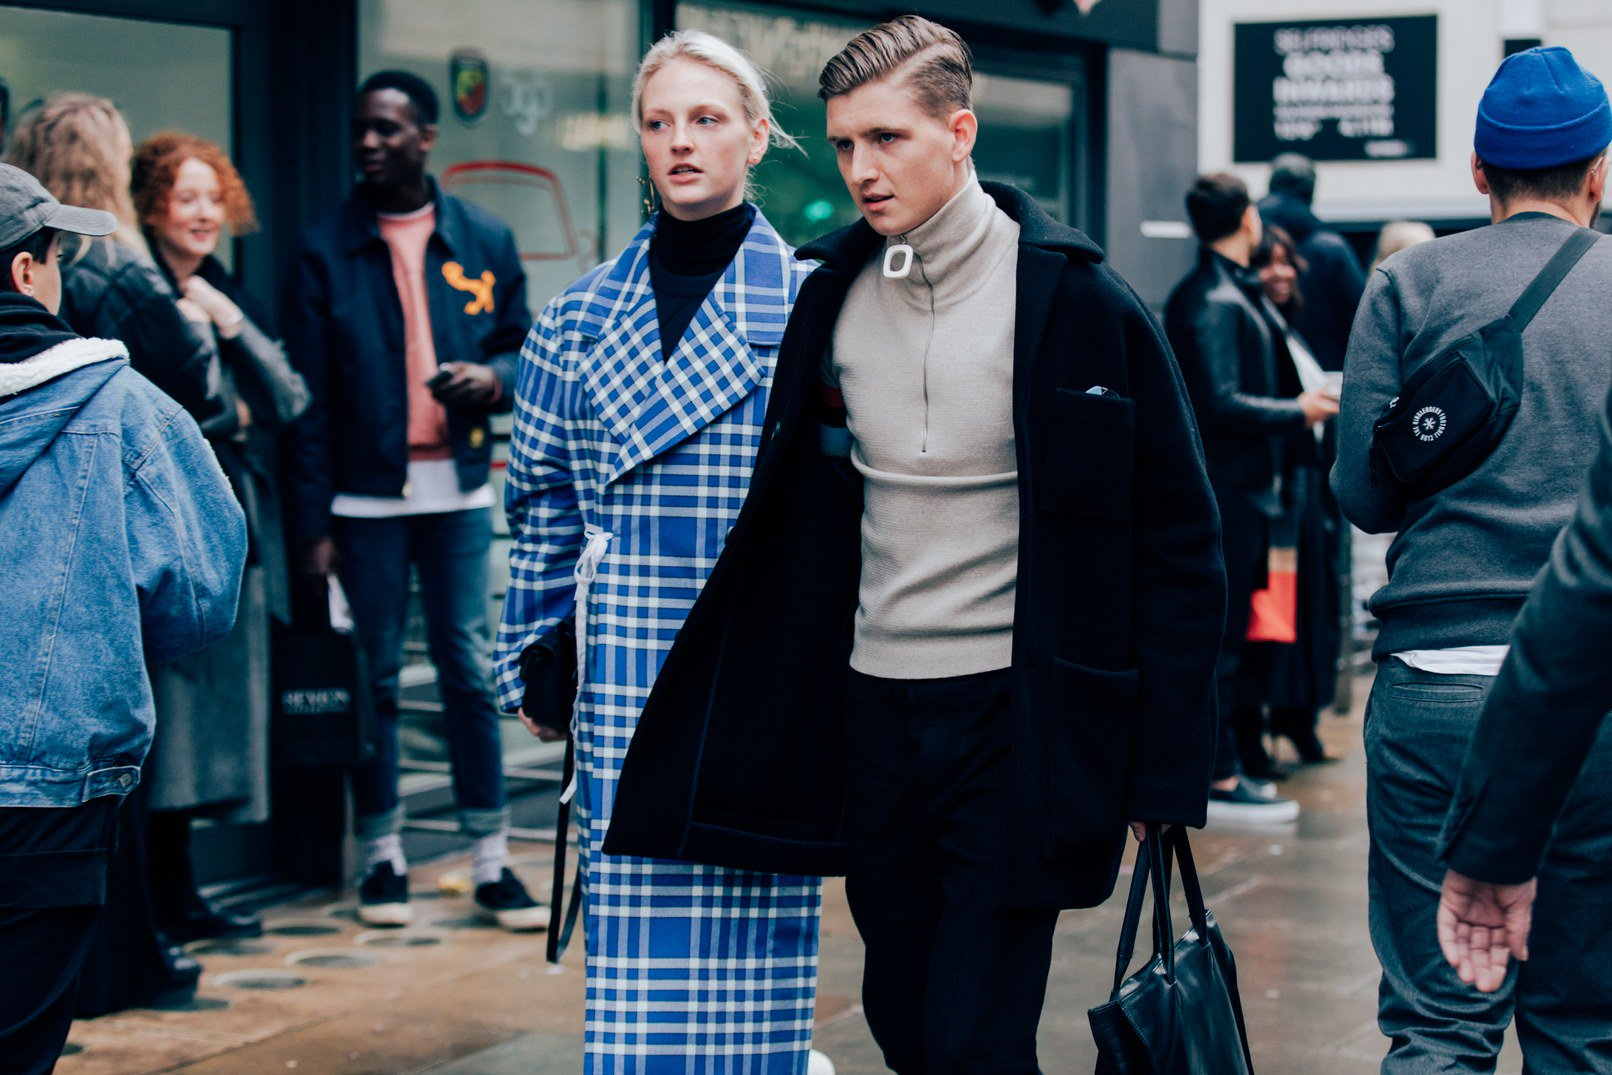 London's most stylish men show you how to dress for winter https://t.co/Uma582SFWI https://t.co/pEbj89Z09l